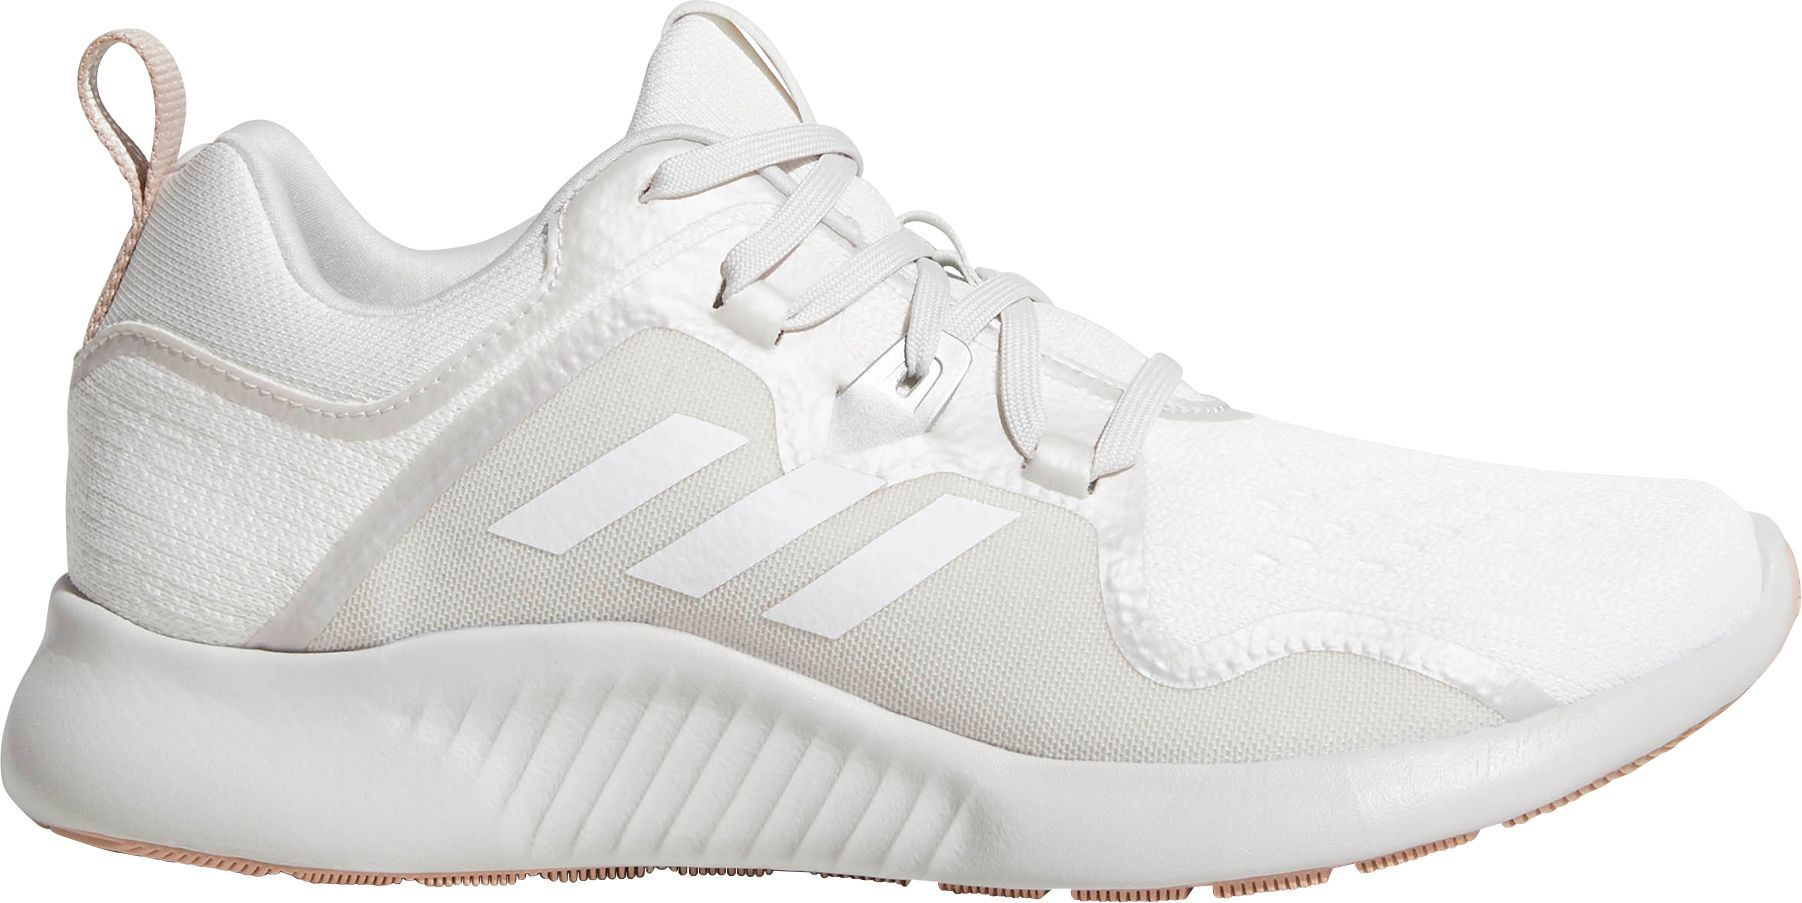 info for 76b73 8b594 adidas Womens Edgebounce Running Shoes, Size 11.0, White